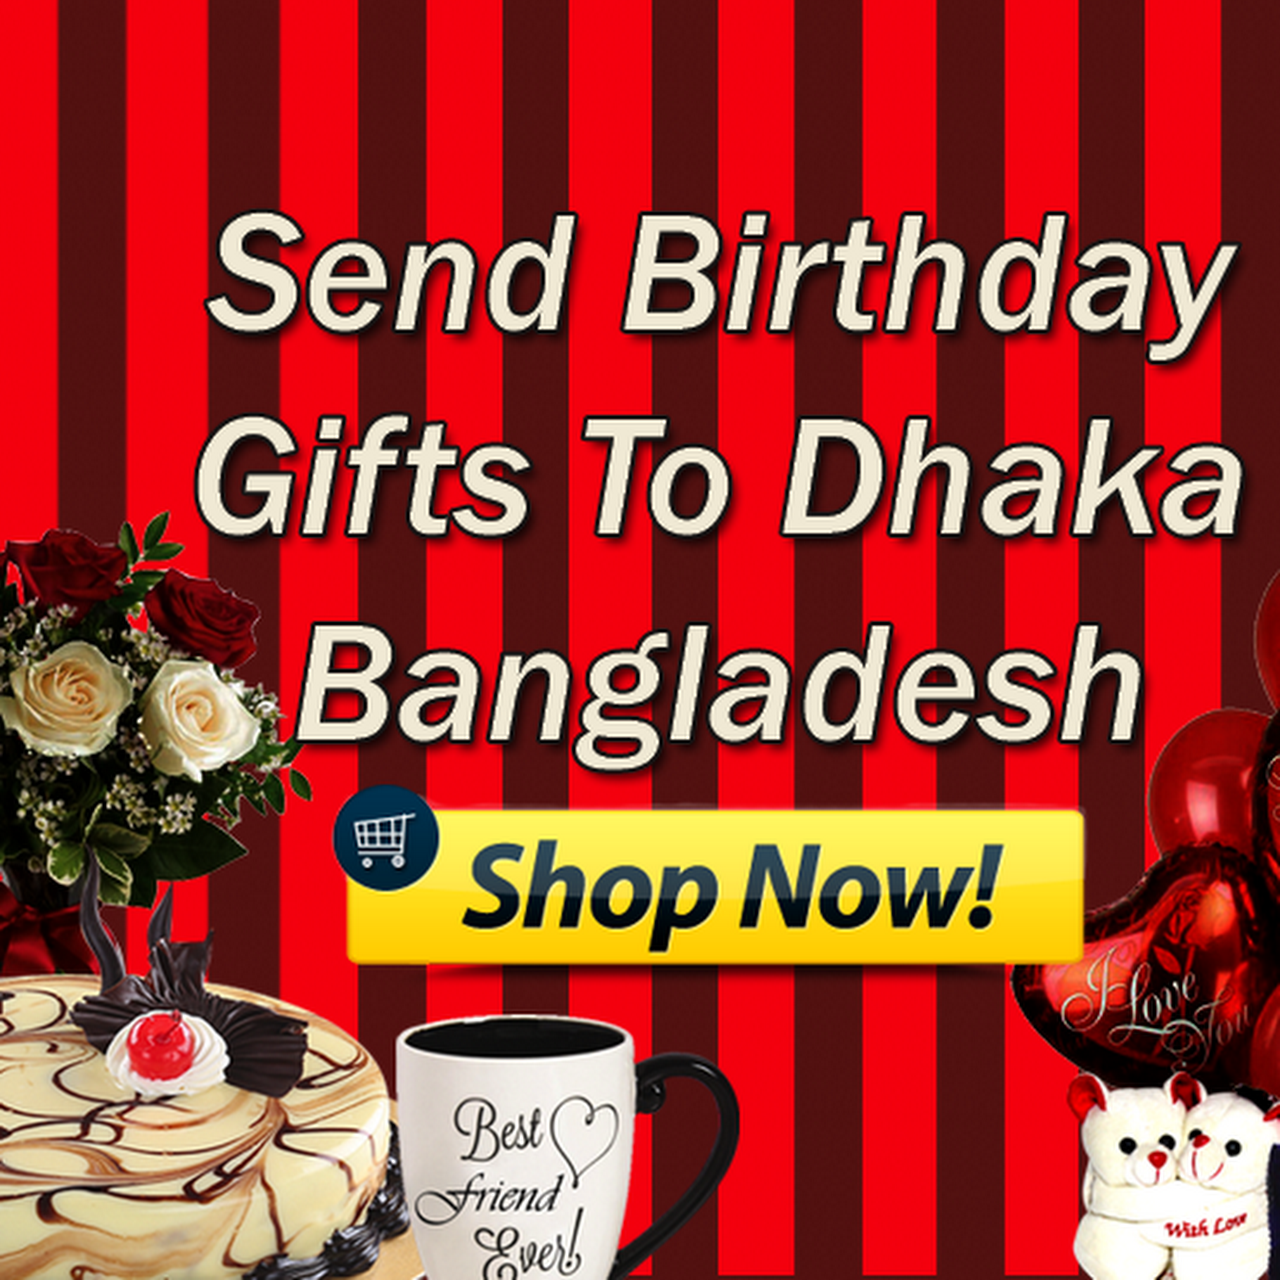 Posted On 16 Mar 2019 BIRTHDAY GIFTS